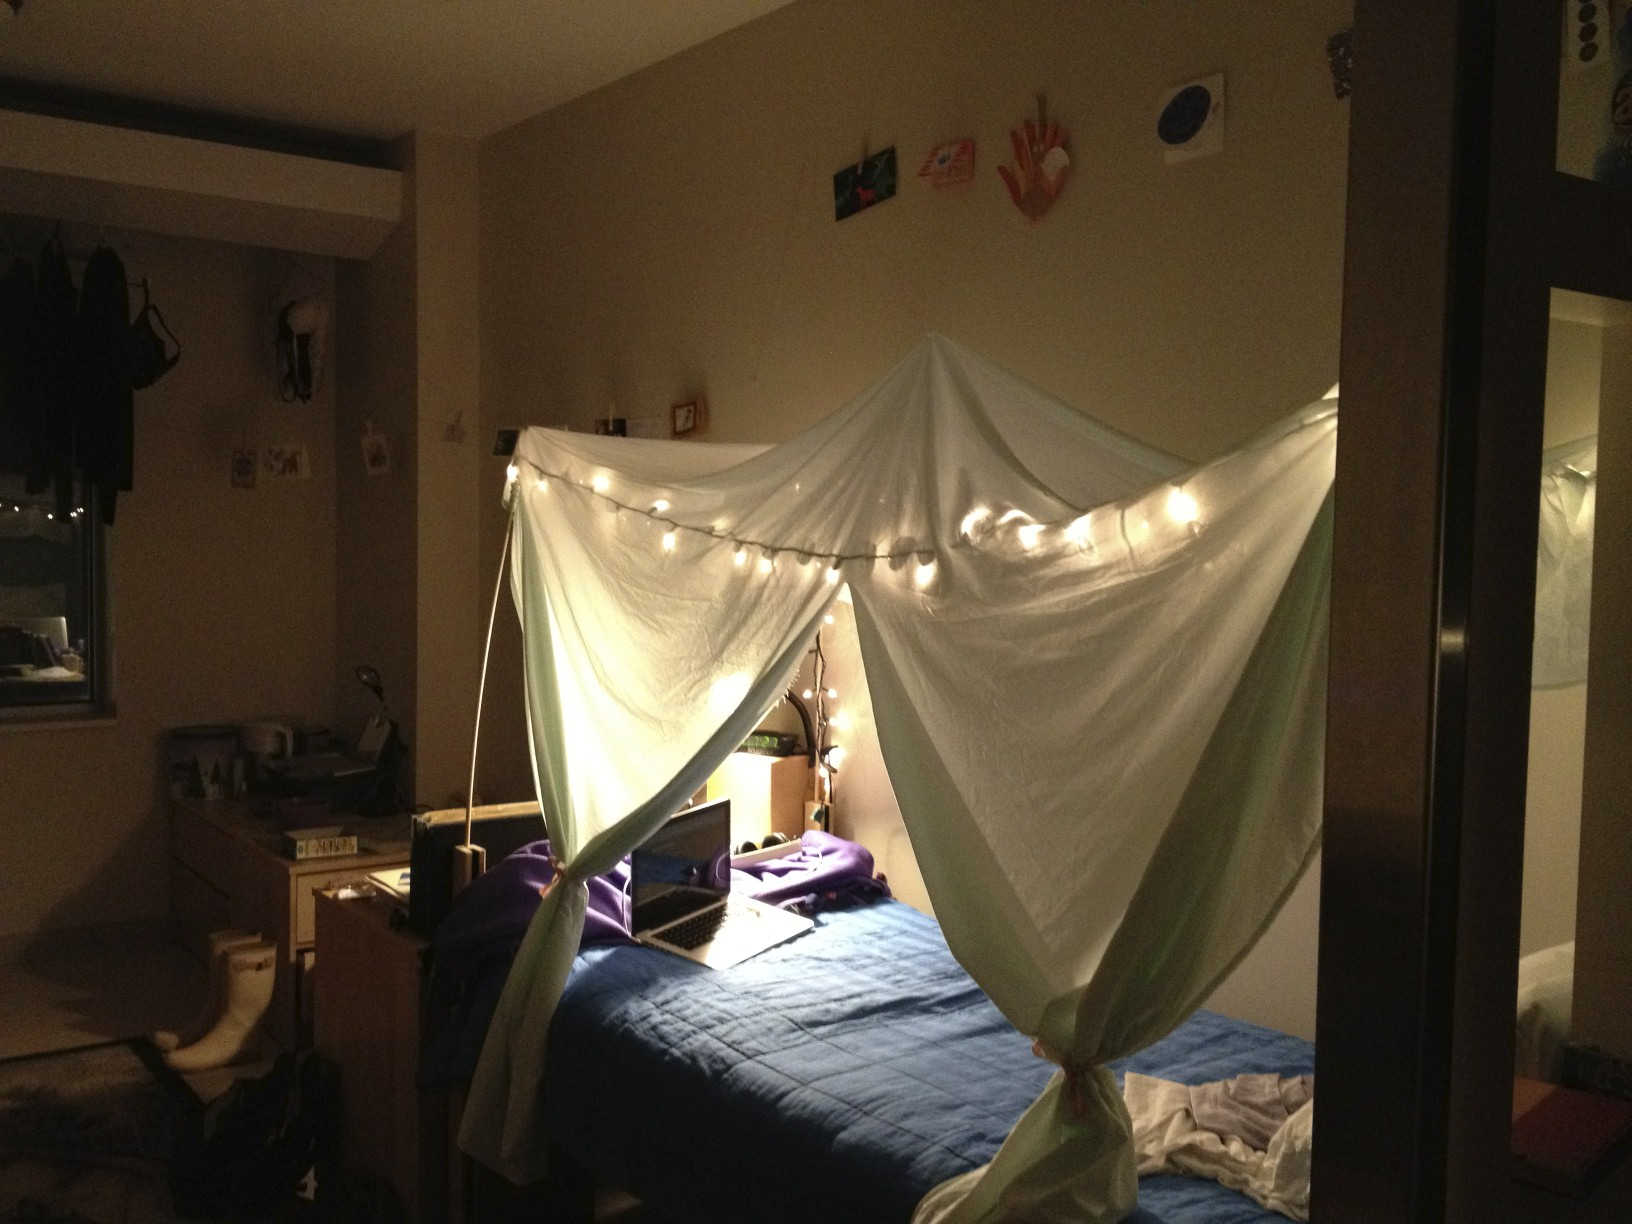 Diy bed canopy dorm - This